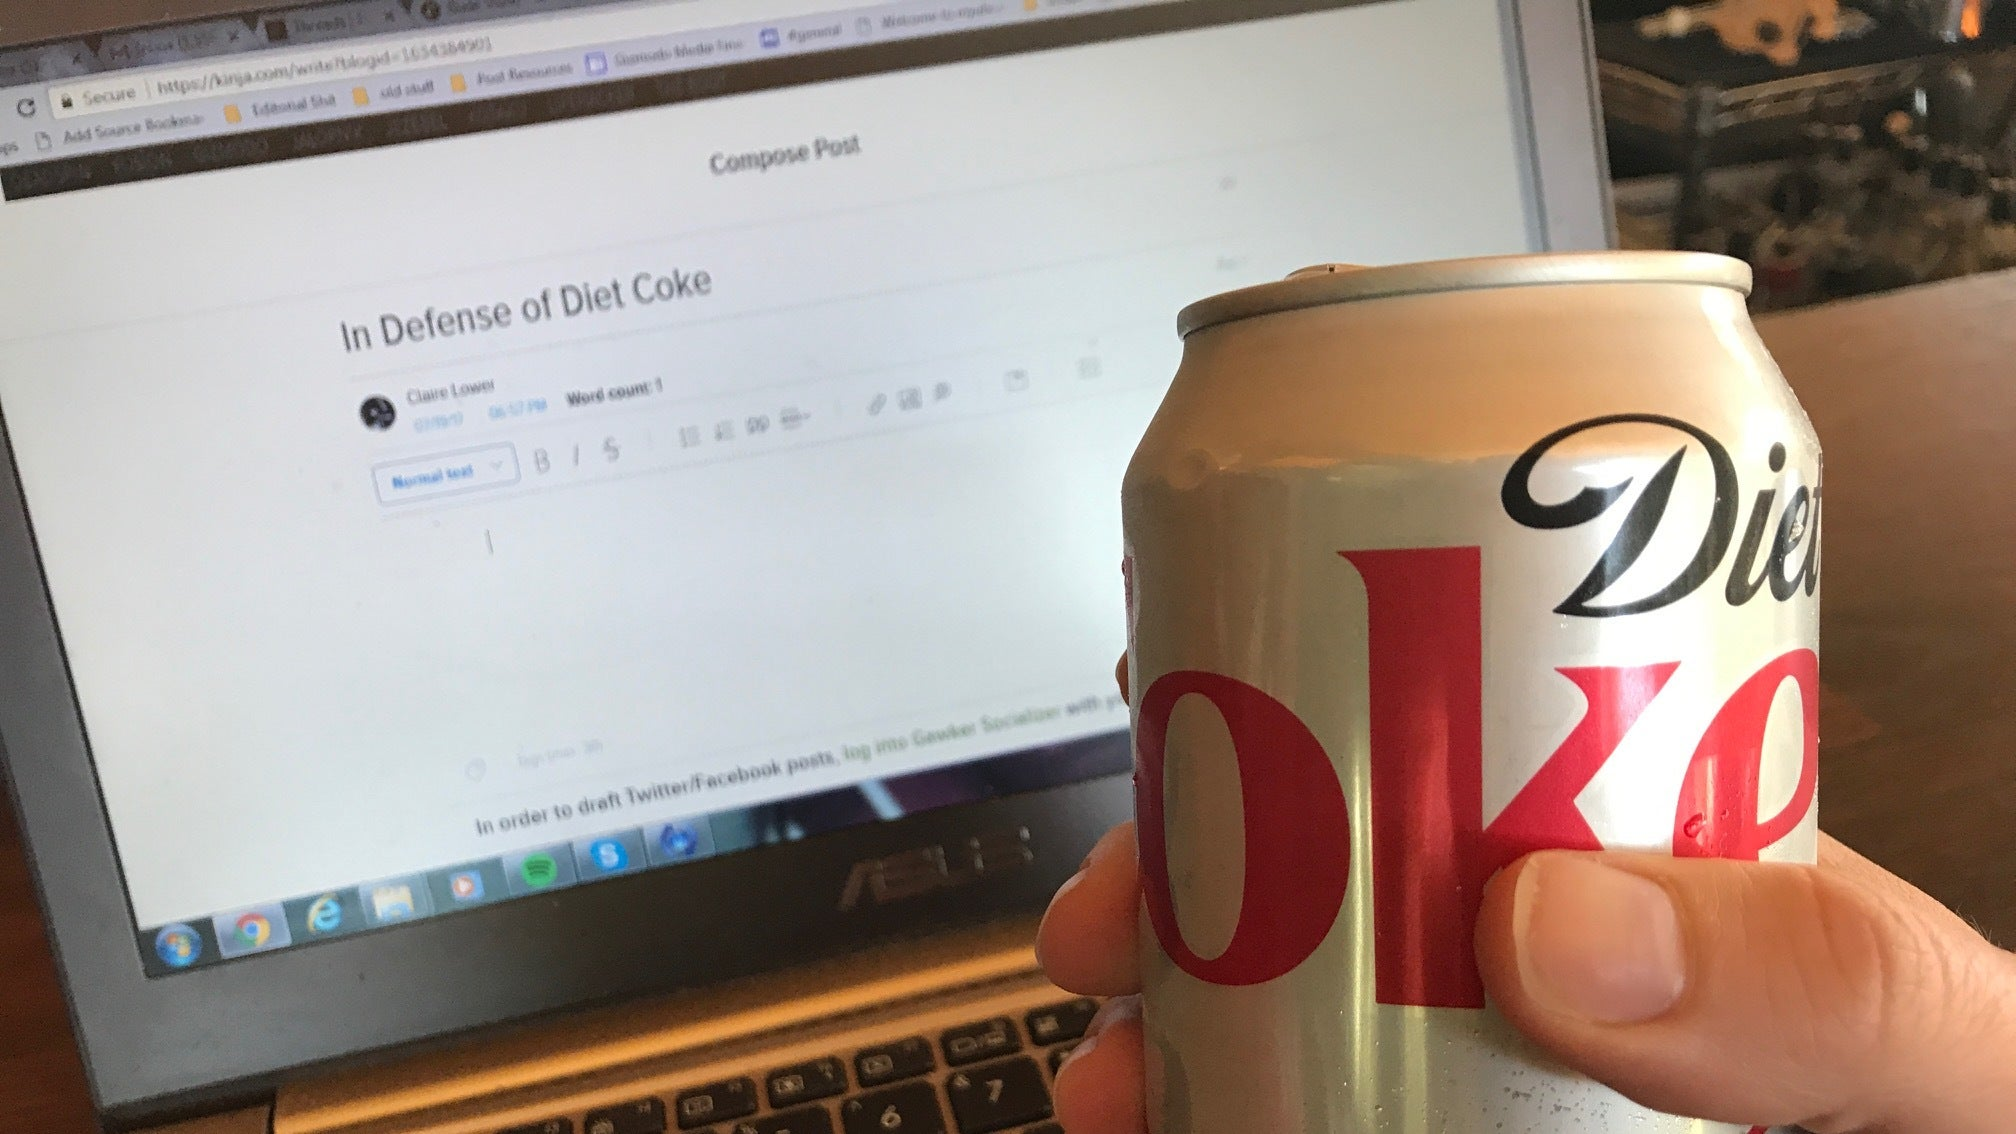 Can I Just Enjoy This Damn Diet Coke Without Being Health-Shamed?